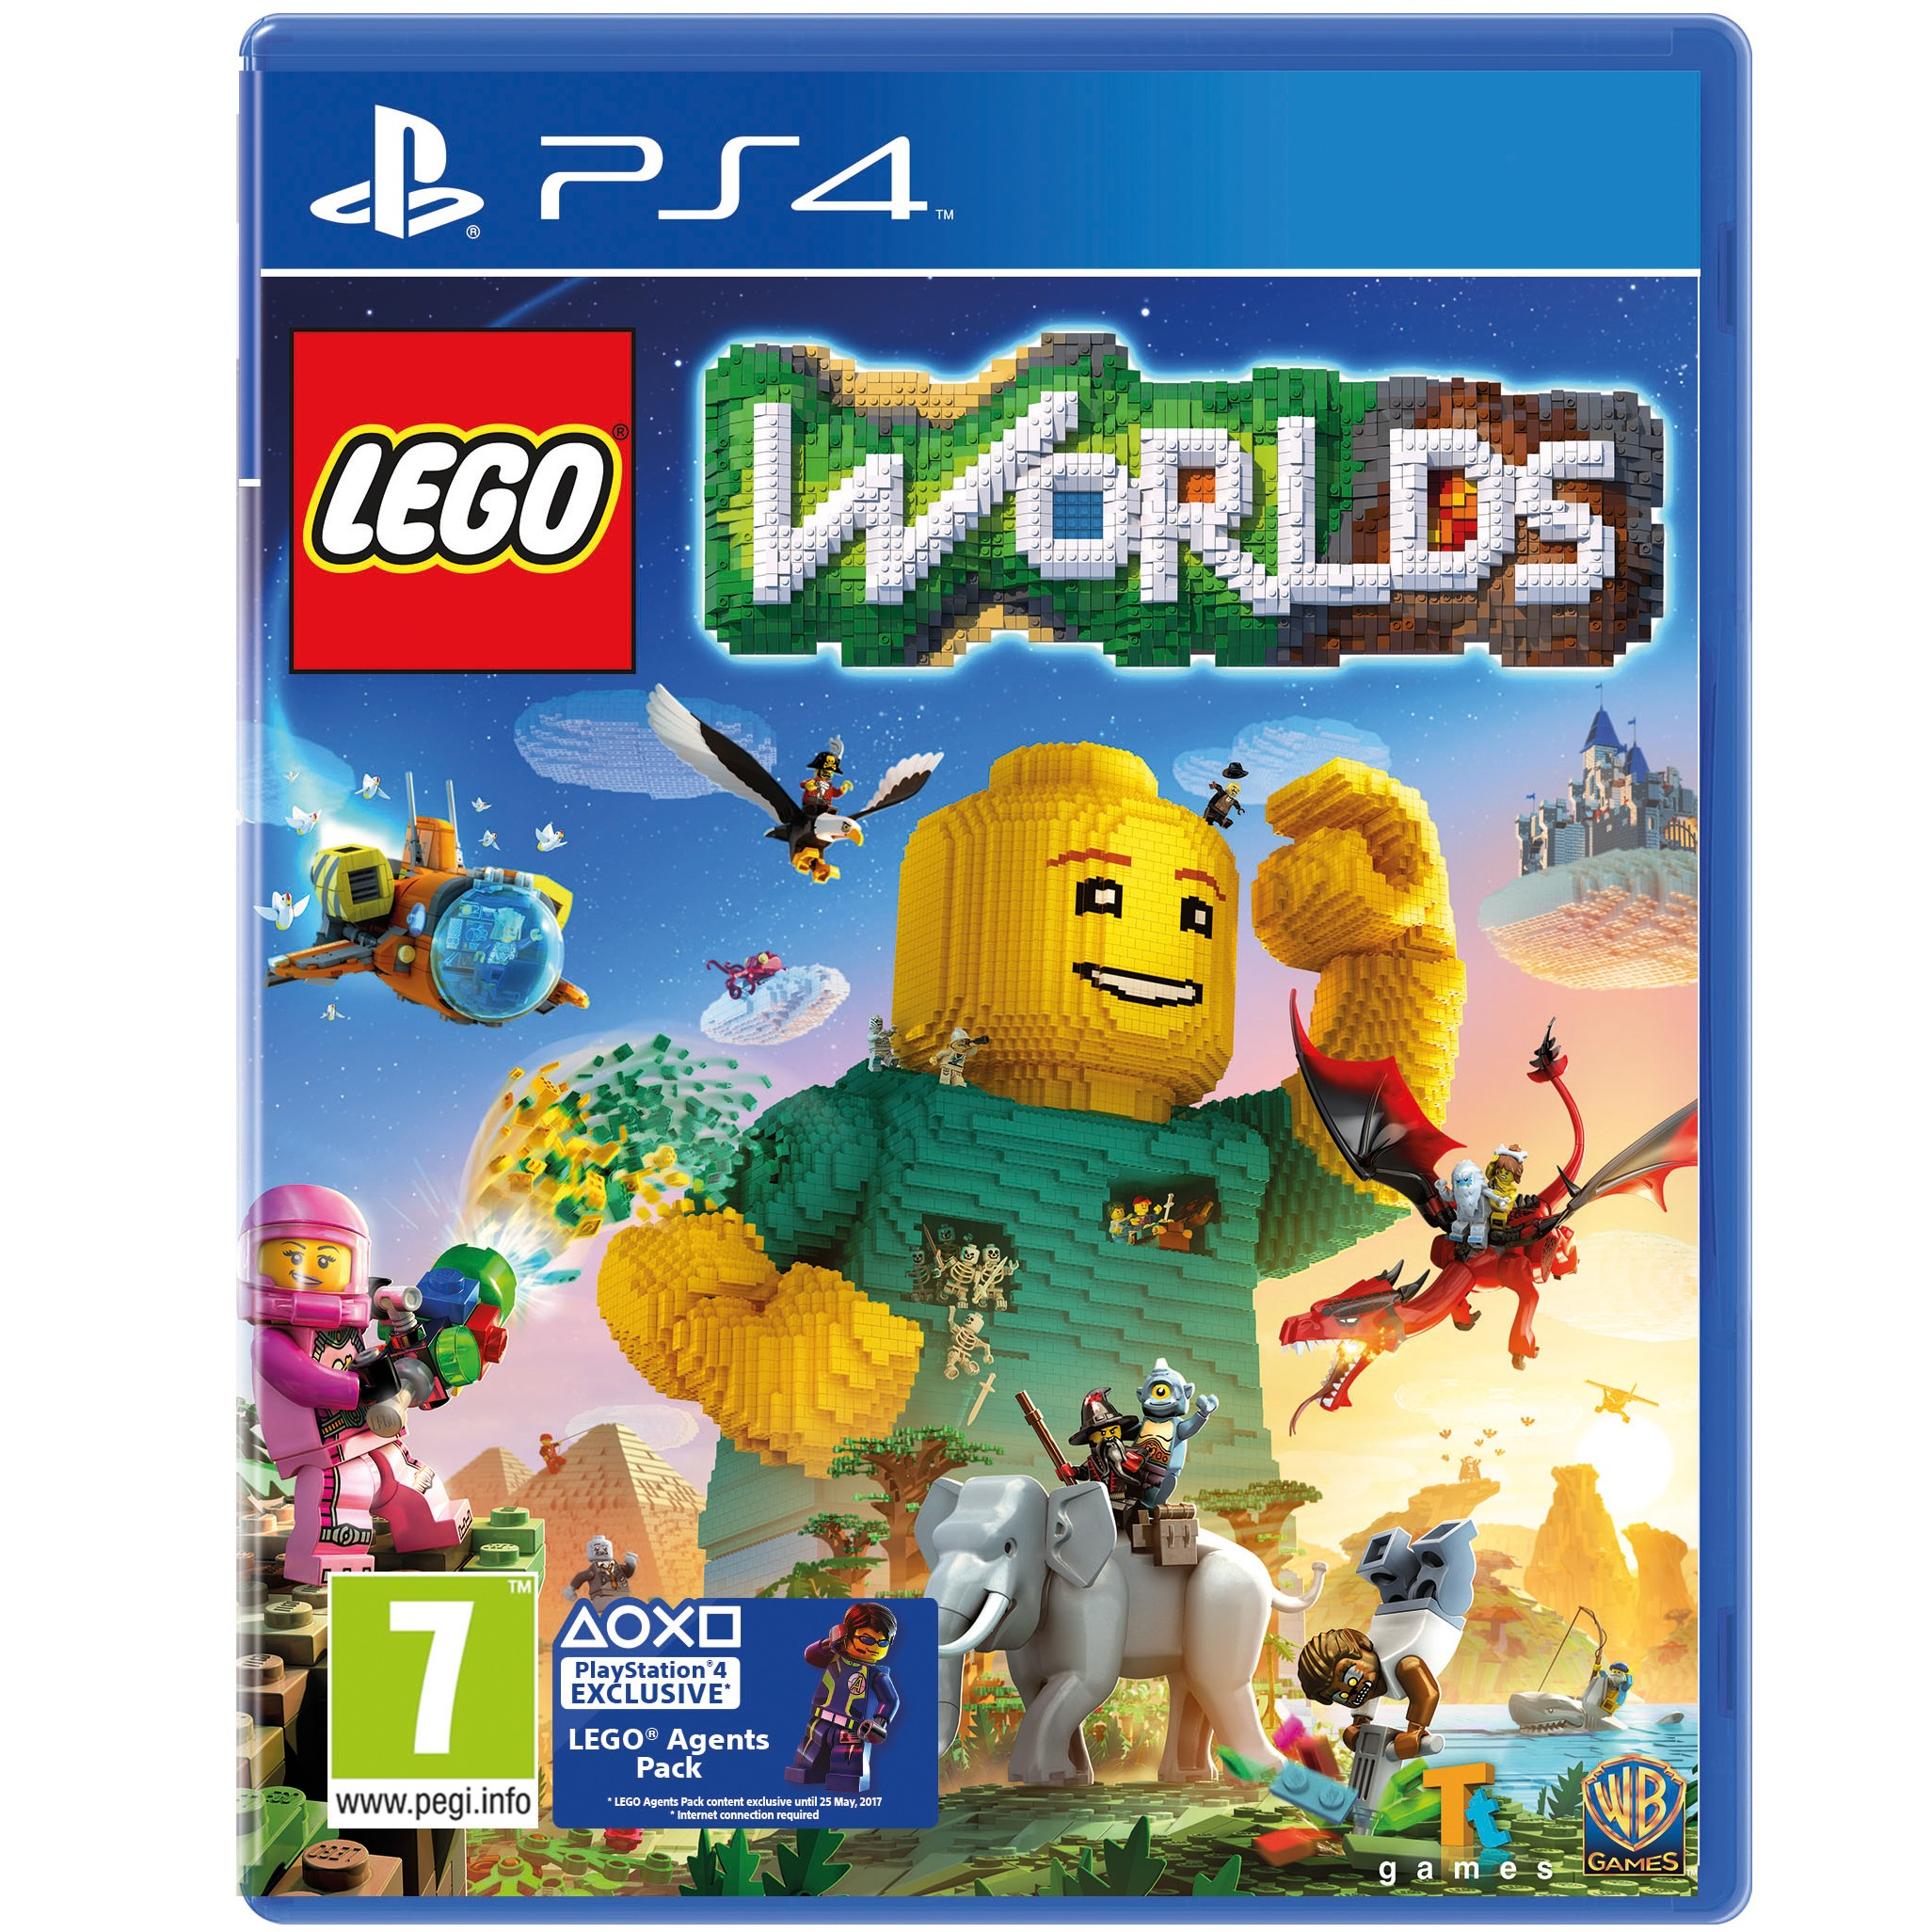 PS4LEGOWOR : LEGO Worlds (PS4)